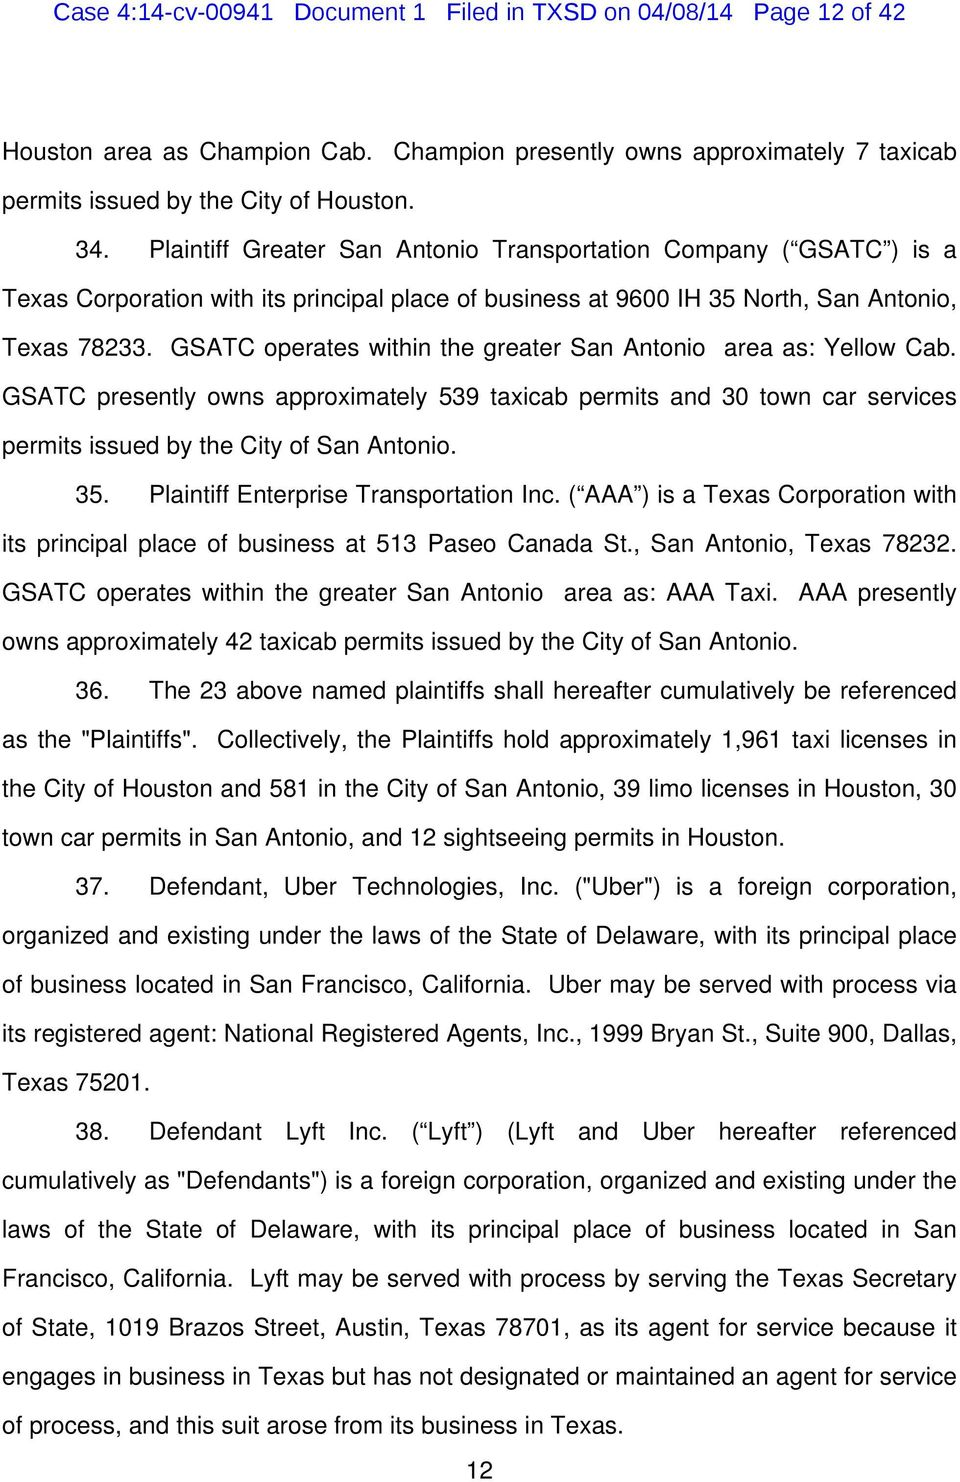 GSATC operates within the greater San Antonio area as: Yellow Cab. GSATC presently owns approximately 539 taxicab permits and 30 town car services permits issued by the City of San Antonio. 35.